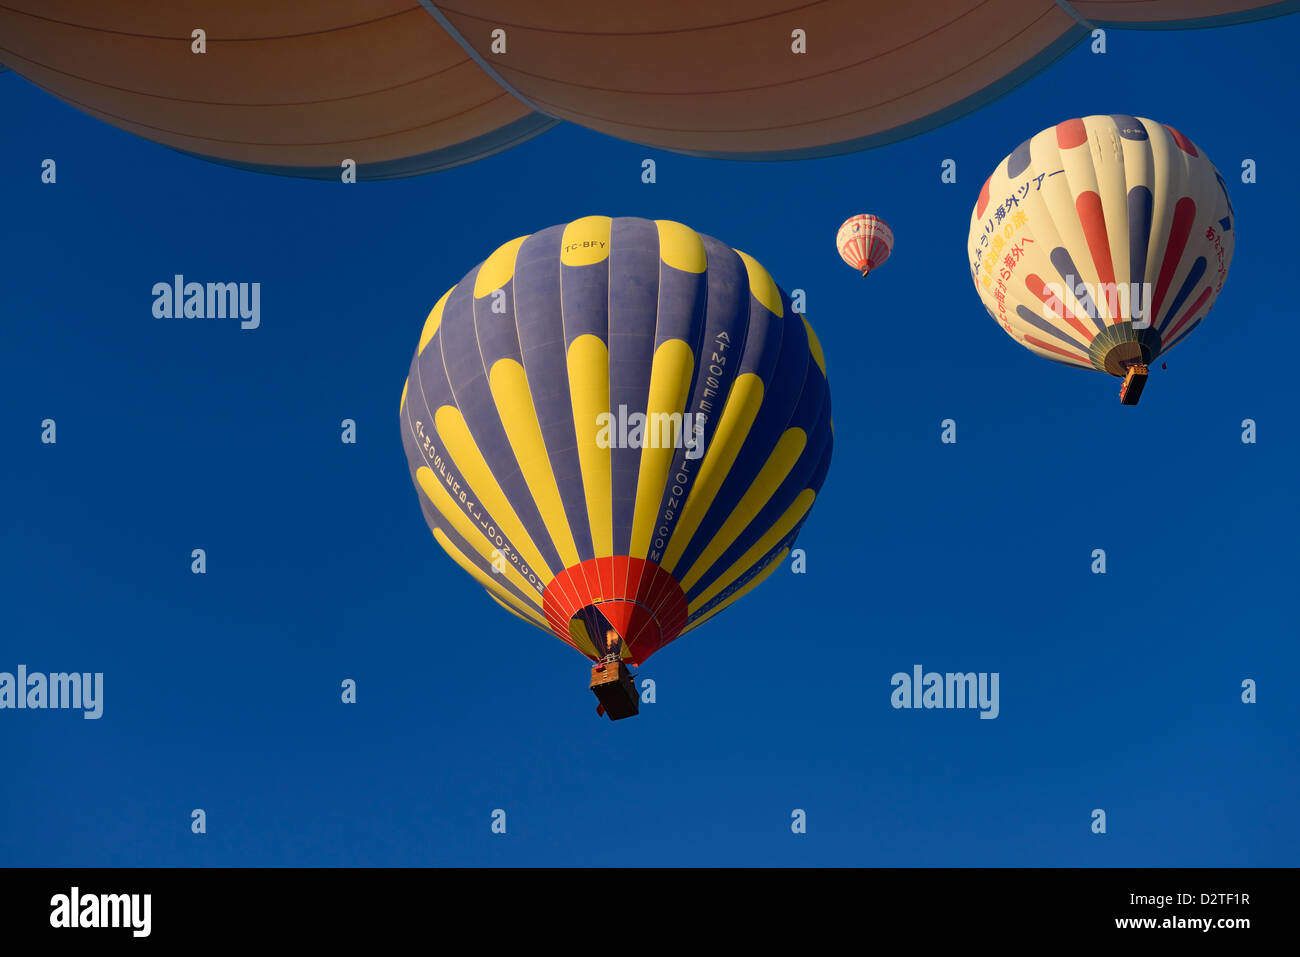 View of overhead hot air balloons and flame from propane heater in Cappadocia Turkey - Stock Image